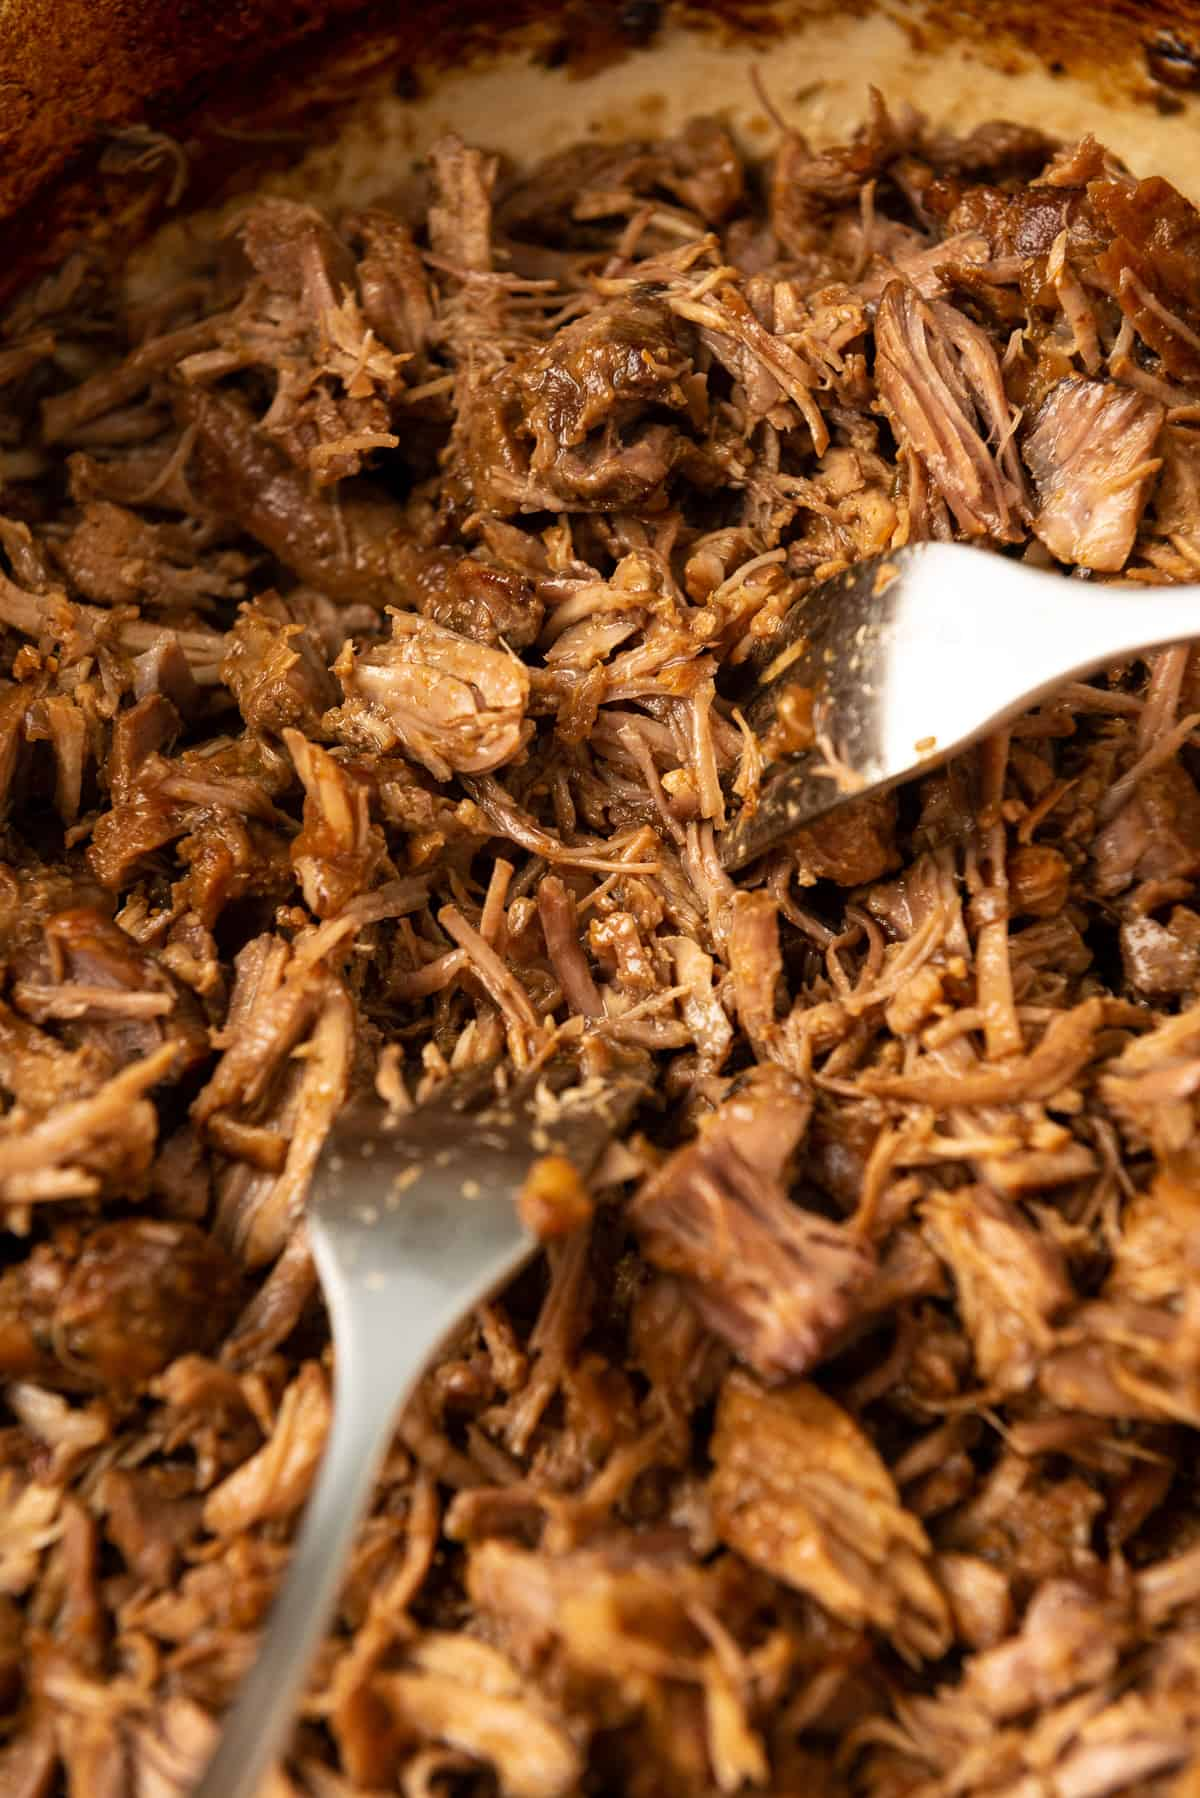 The tender pork is shredded with two forks into the sauce in the Dutch oven.